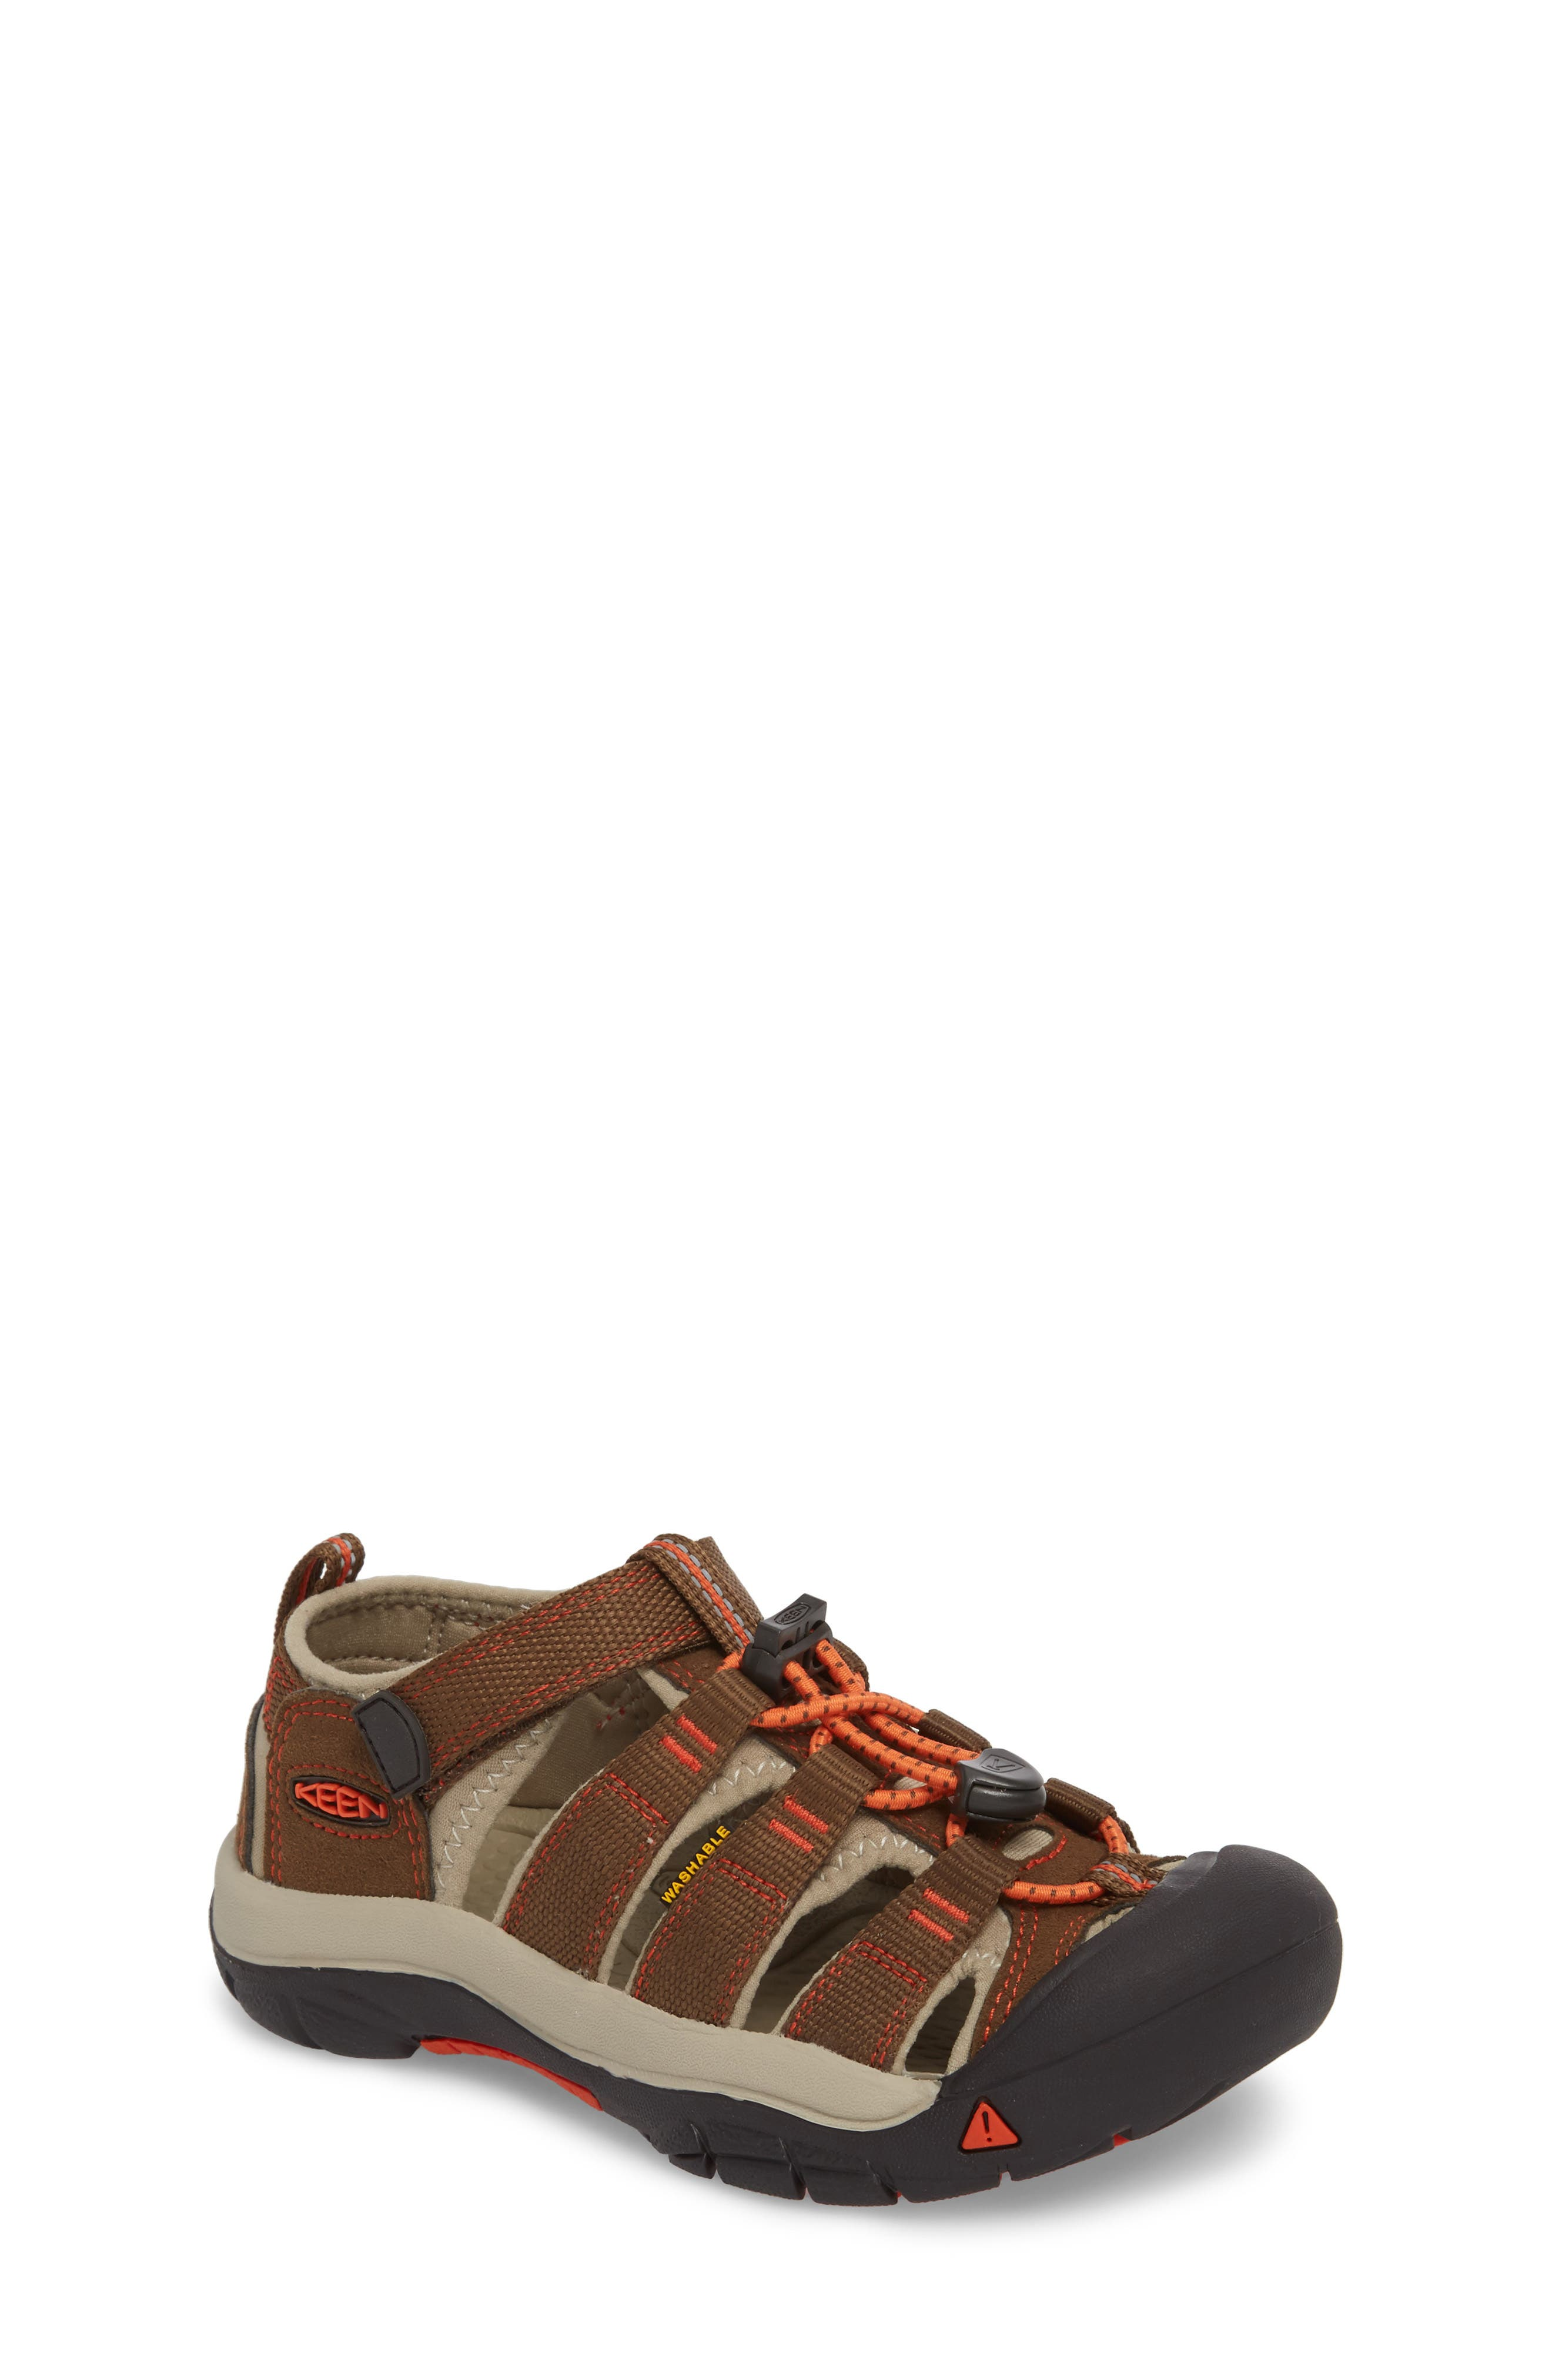 'Newport H2' Water Friendly Sandal,                         Main,                         color, DARK EARTH/ SPICY ORANGE